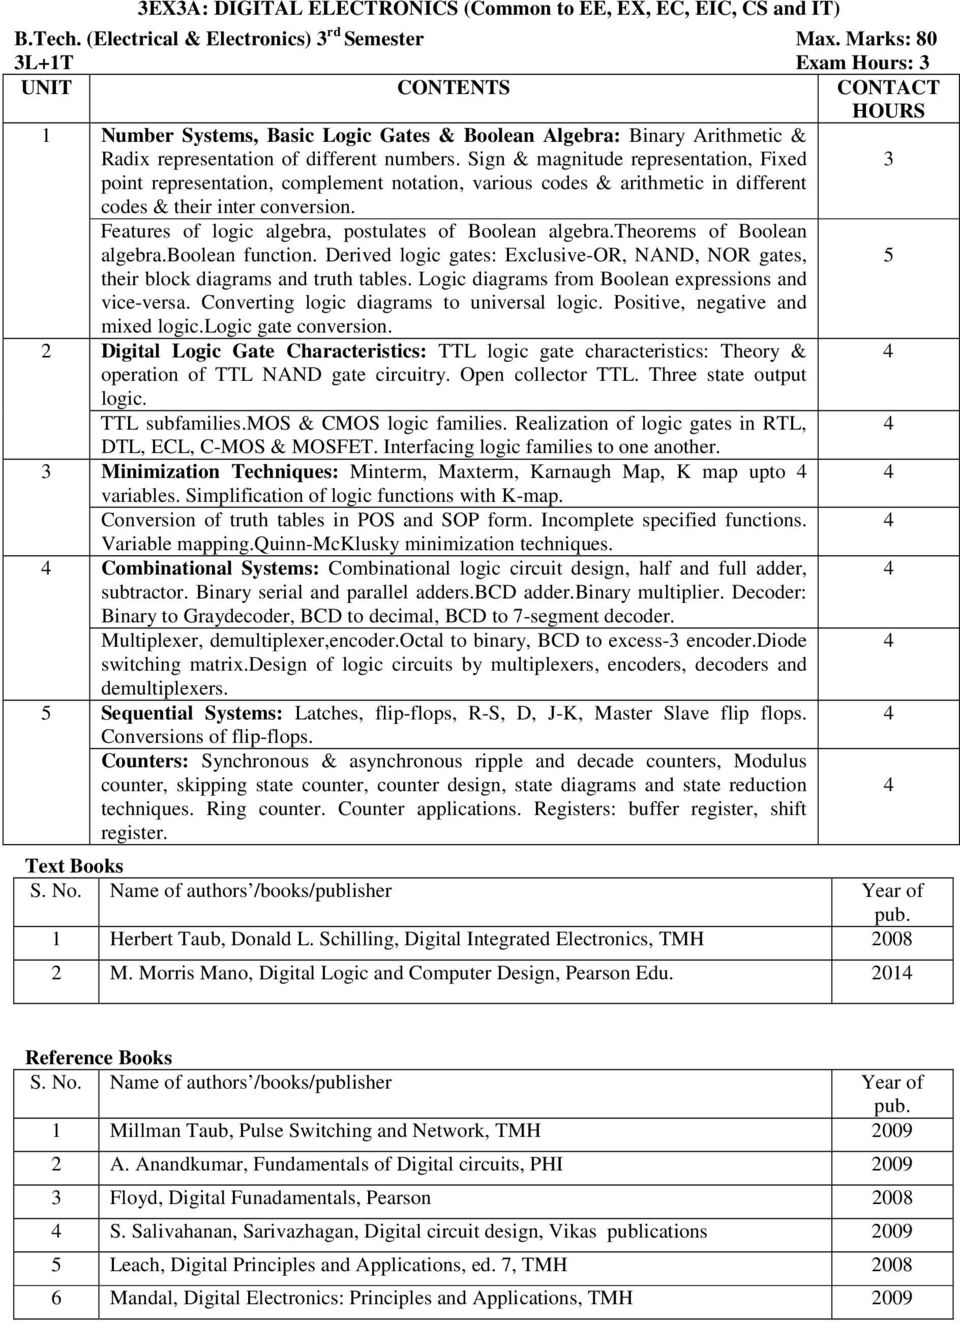 Syllabus Btech Electrical Electronics Engineering 3 Rd Circuitlab Phase Shift Delay Sign Magnitude Representation Fixed Point Complement Notation Various Codes